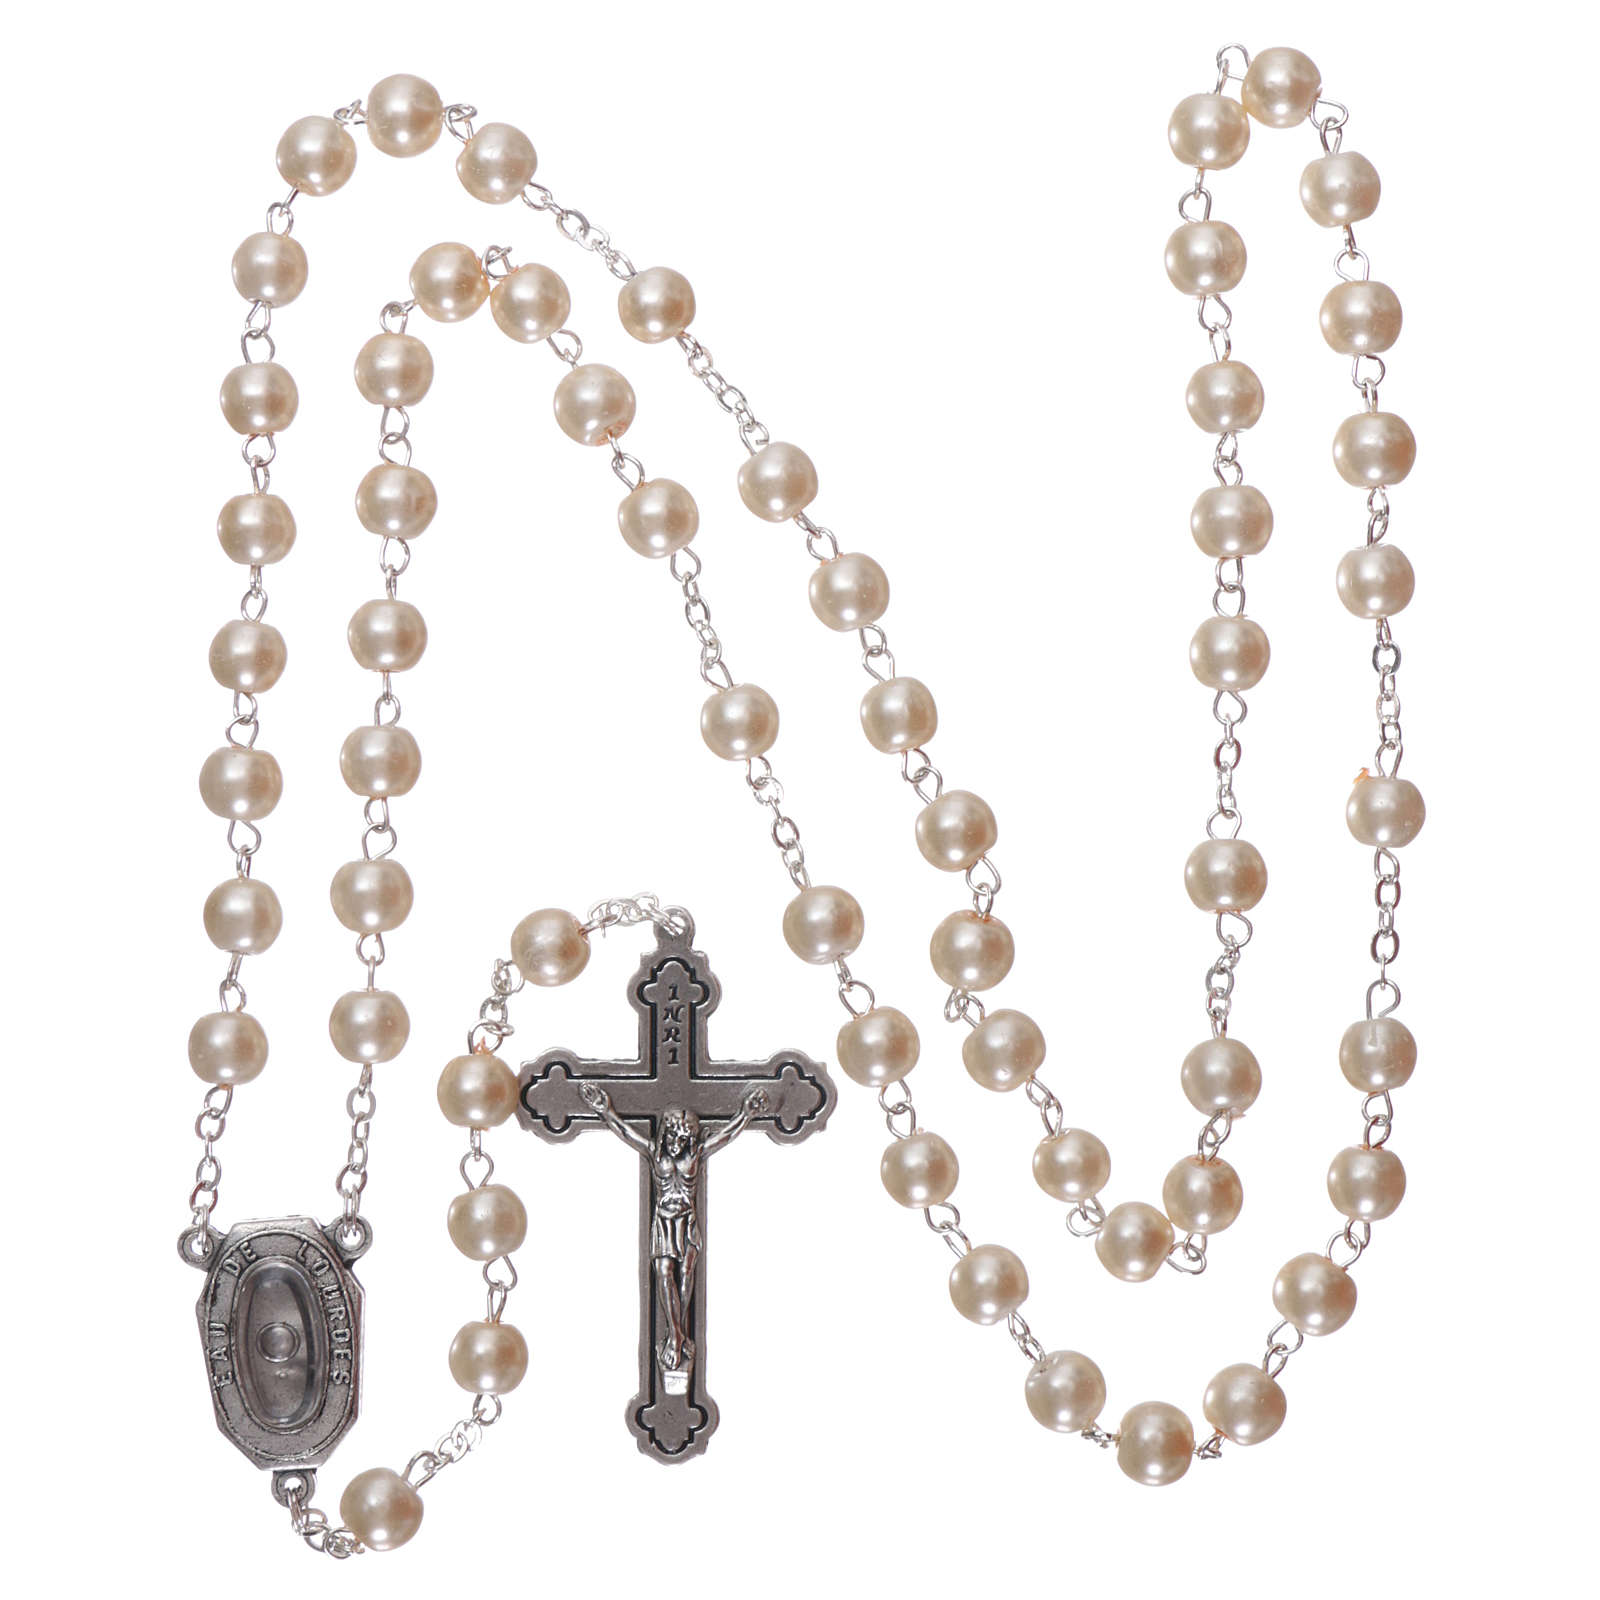 Rosary in glass Our Lady of Lourdes with Lourdes water 4x5 mm grains, white 4